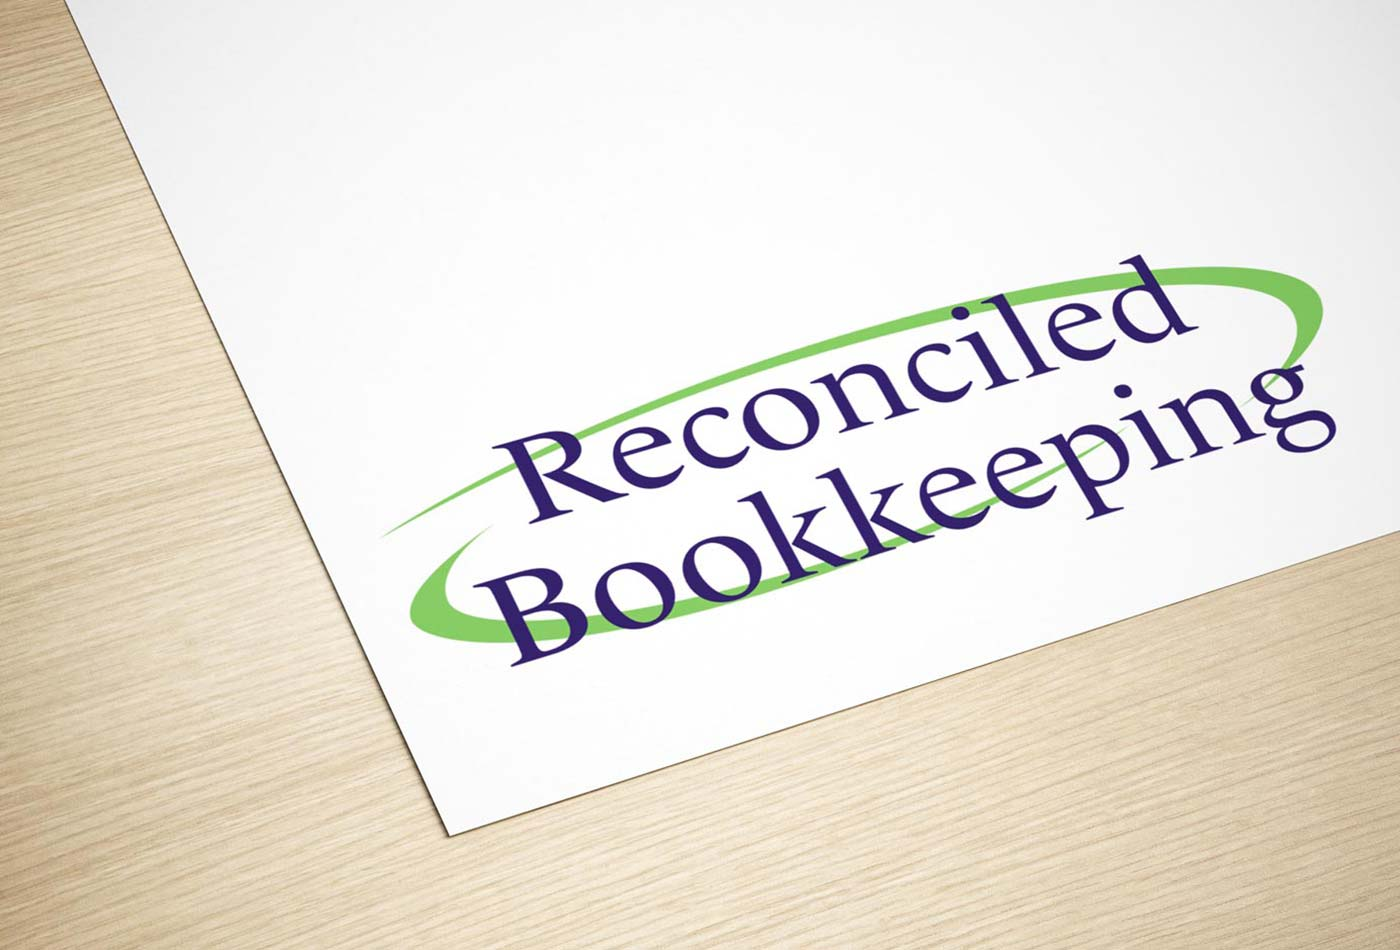 Reconciled Bookkeeping logo